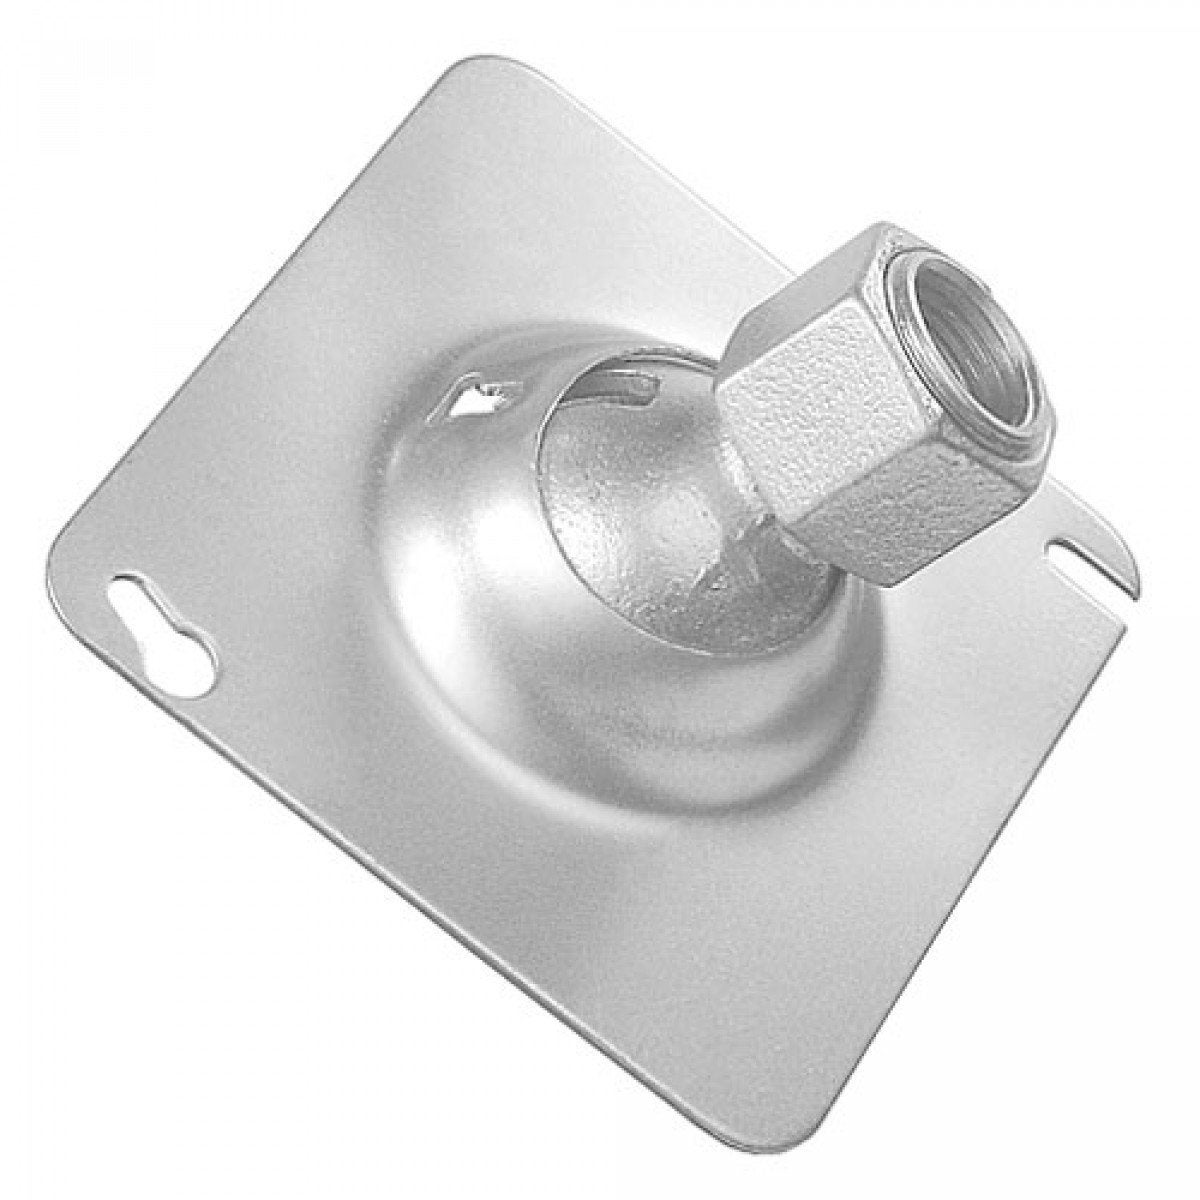 2 Pcs, 4 in. Square Swivel Fixture Hanger Cover for 1/2 in. Pipe, Zinc Plated Steel